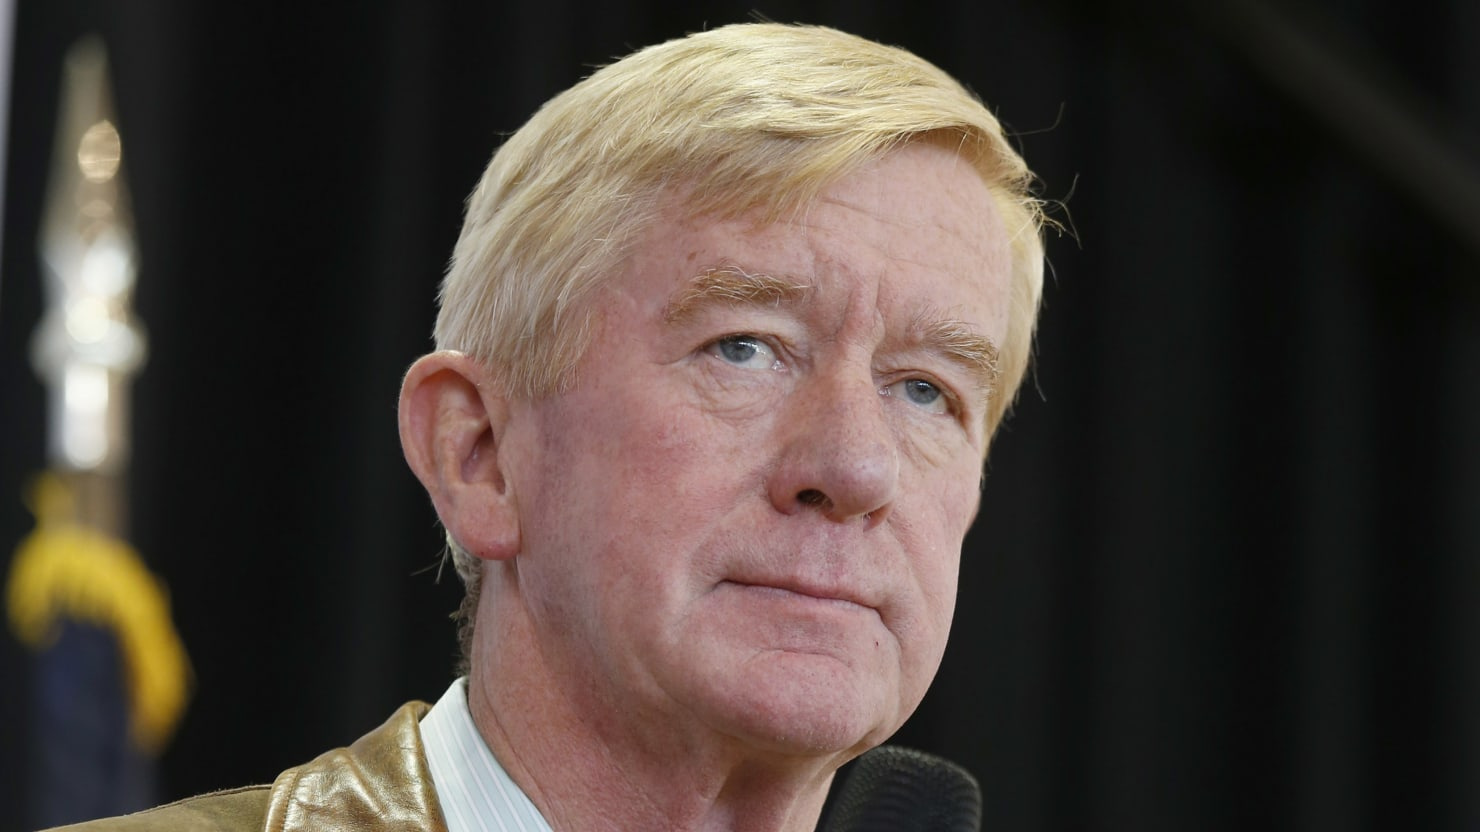 Bill Weld: I'm Running Against Trump in the Republican Primary